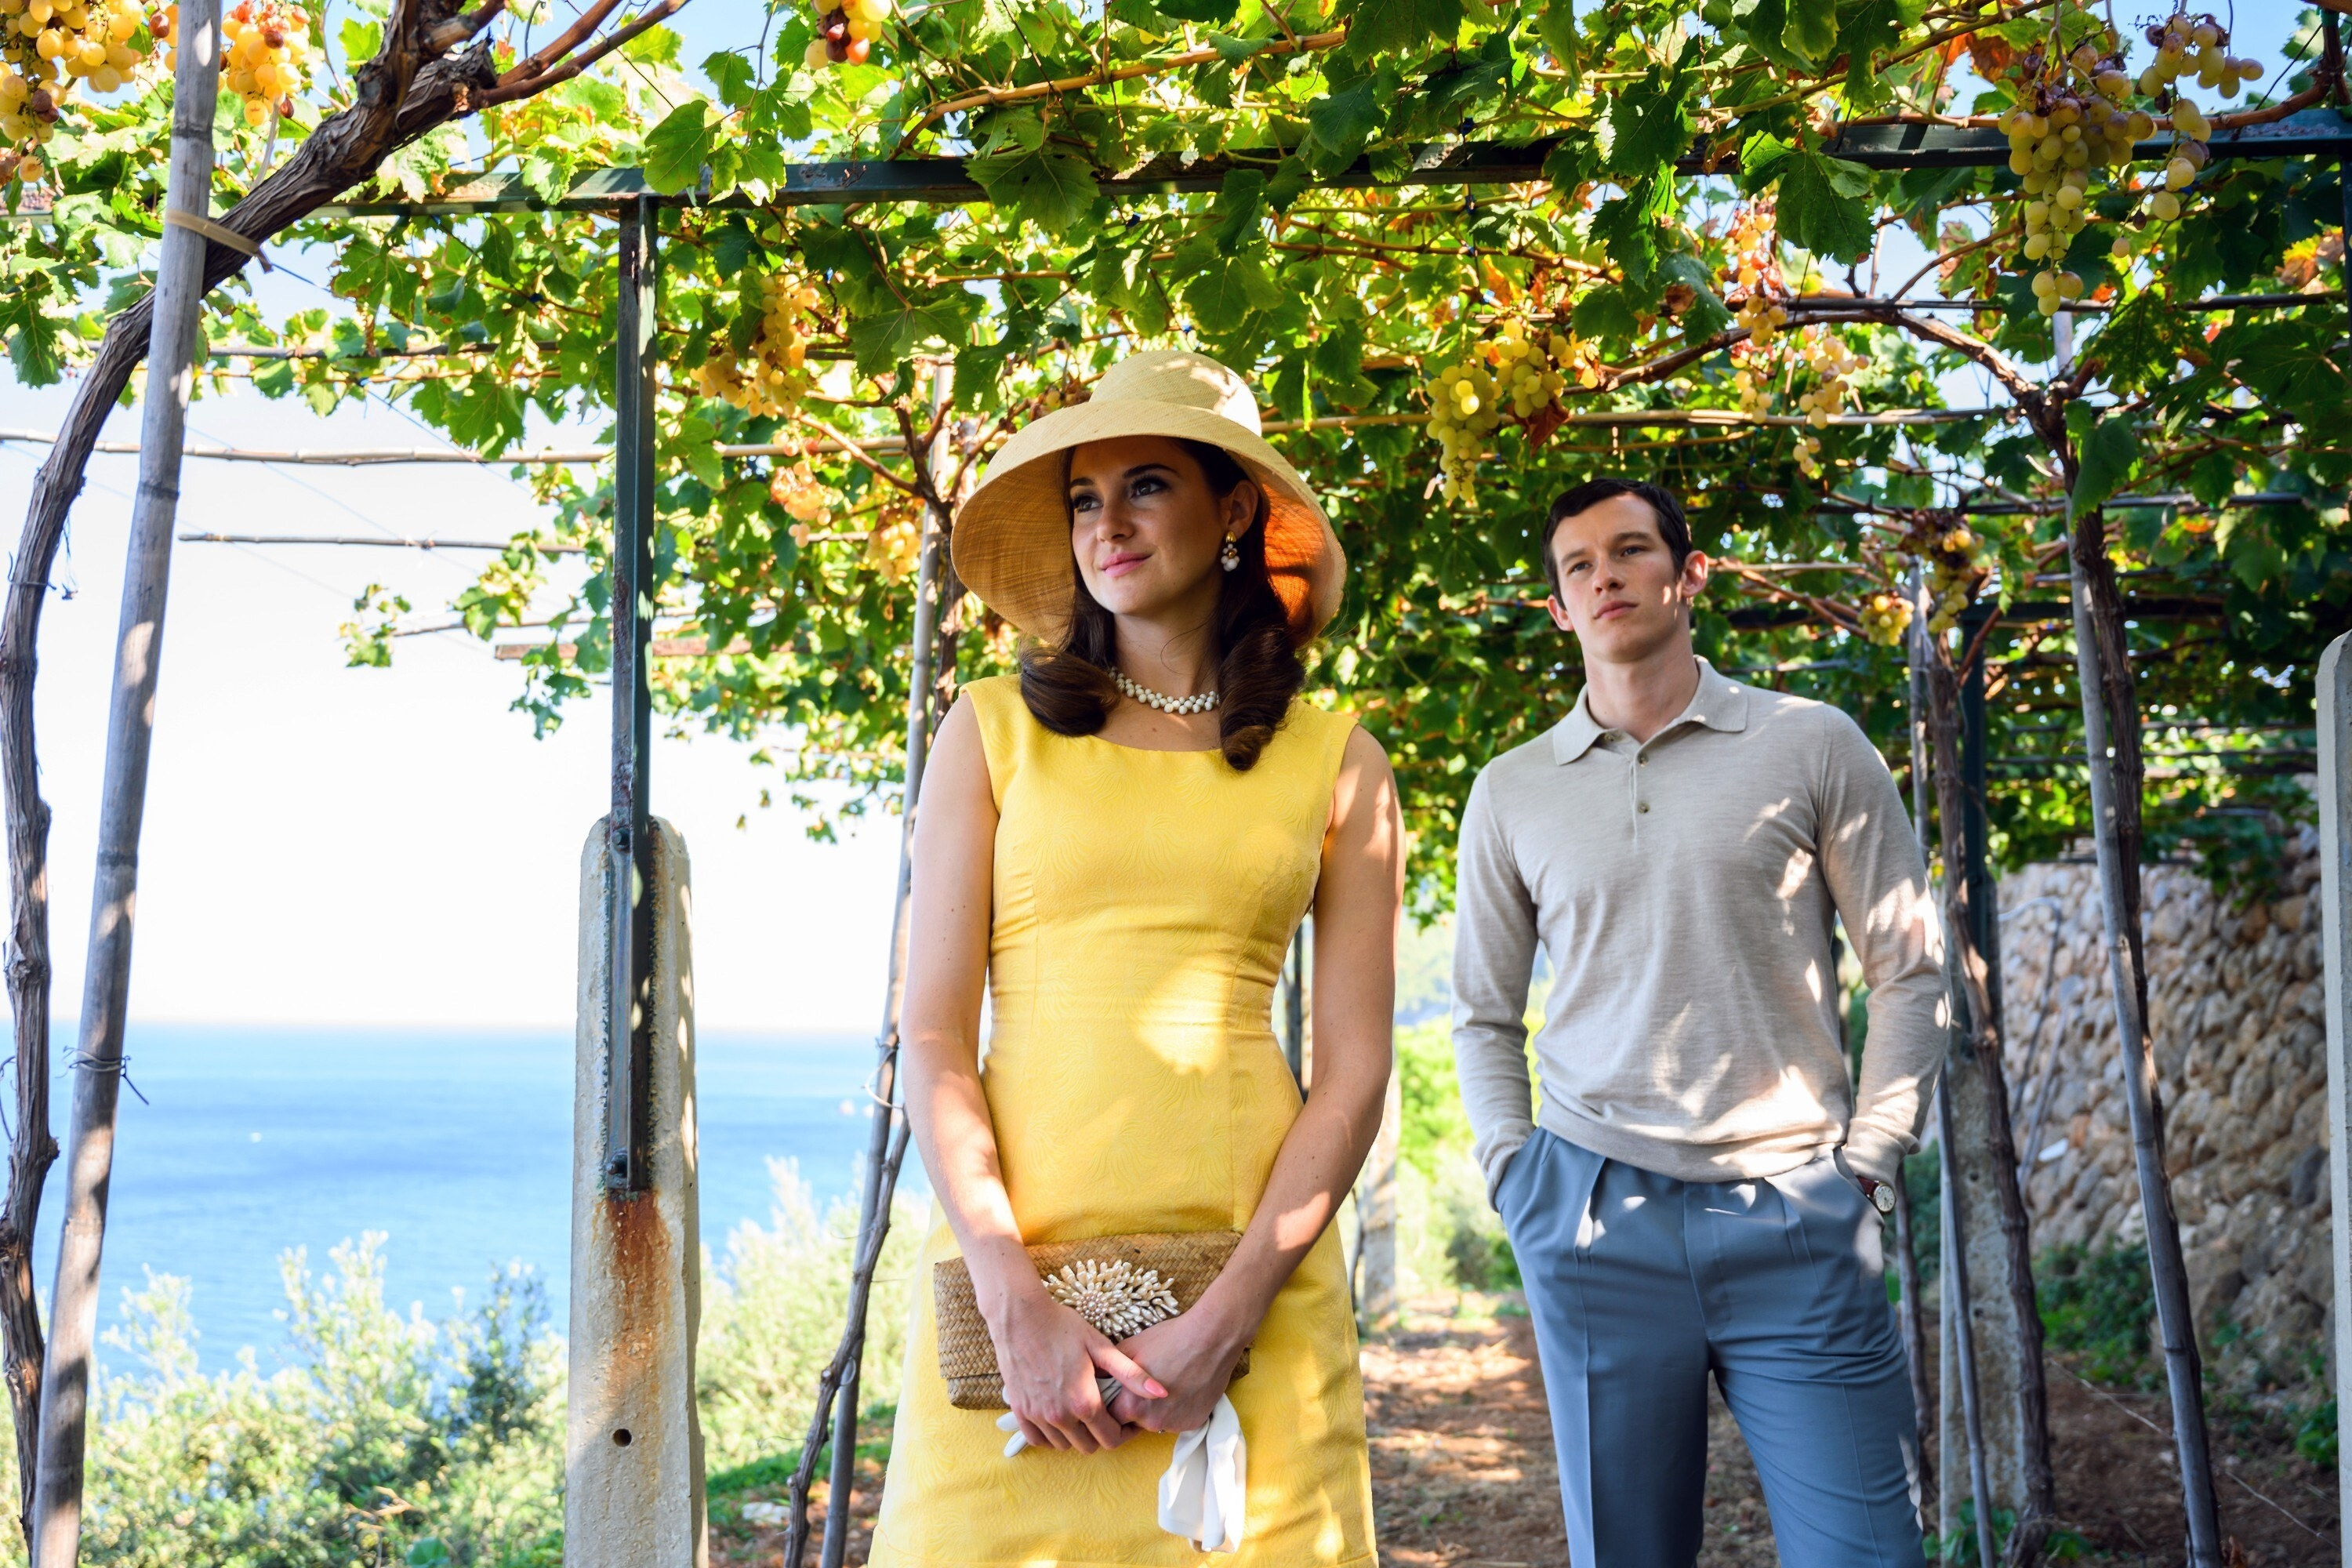 Jennifer in a tailored dress and hat, holding bag and gloves, with Anthony behind her in shirt with long sleeves and collar, and slacks, standing on a walkway under a canopy of leaves, ocean in the background